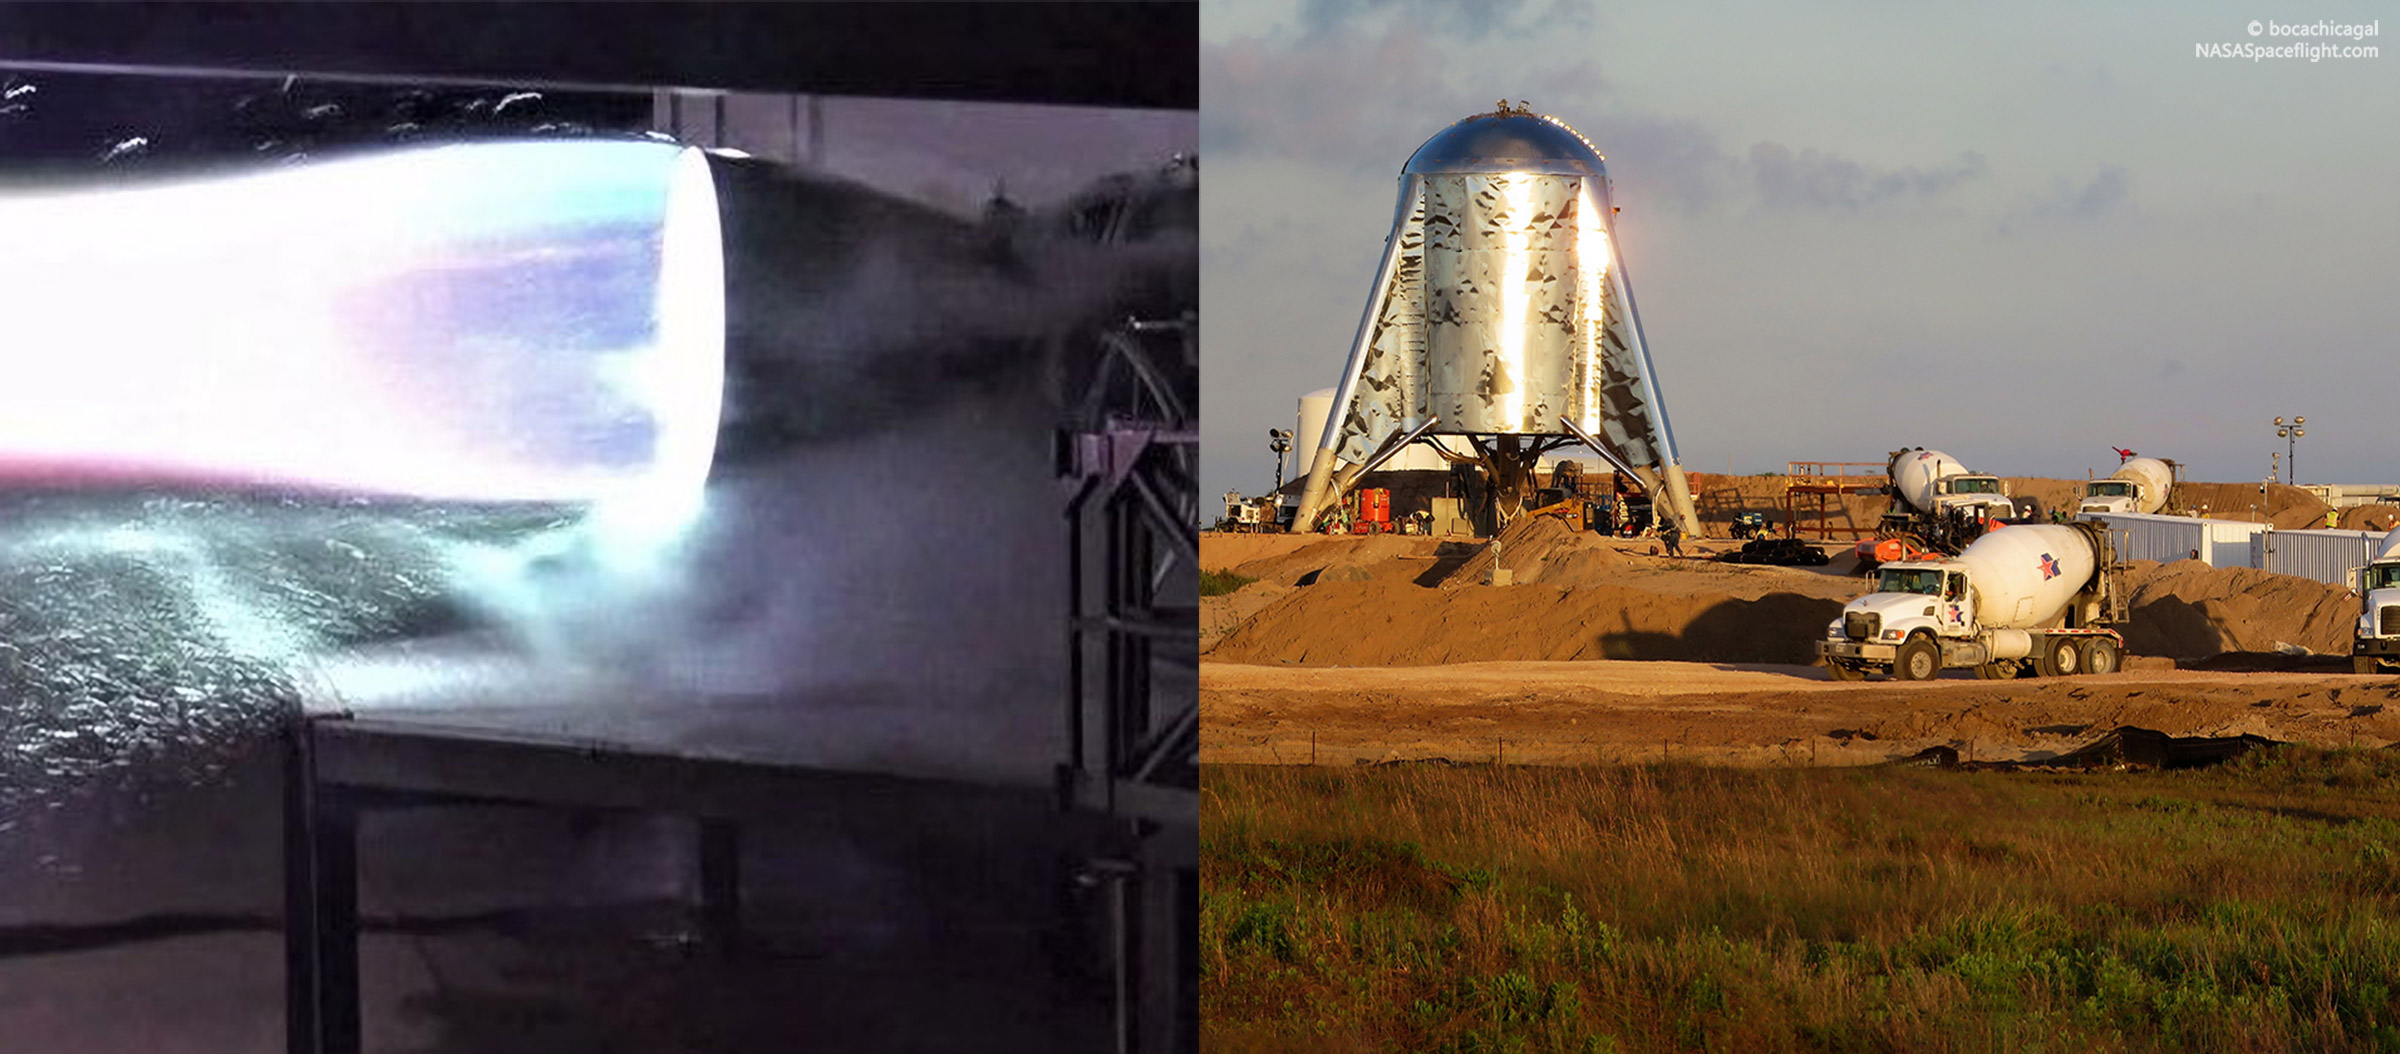 Boca Chica Starhopper pad and Raptor 042719 (SpaceX & bocachicagal) 1